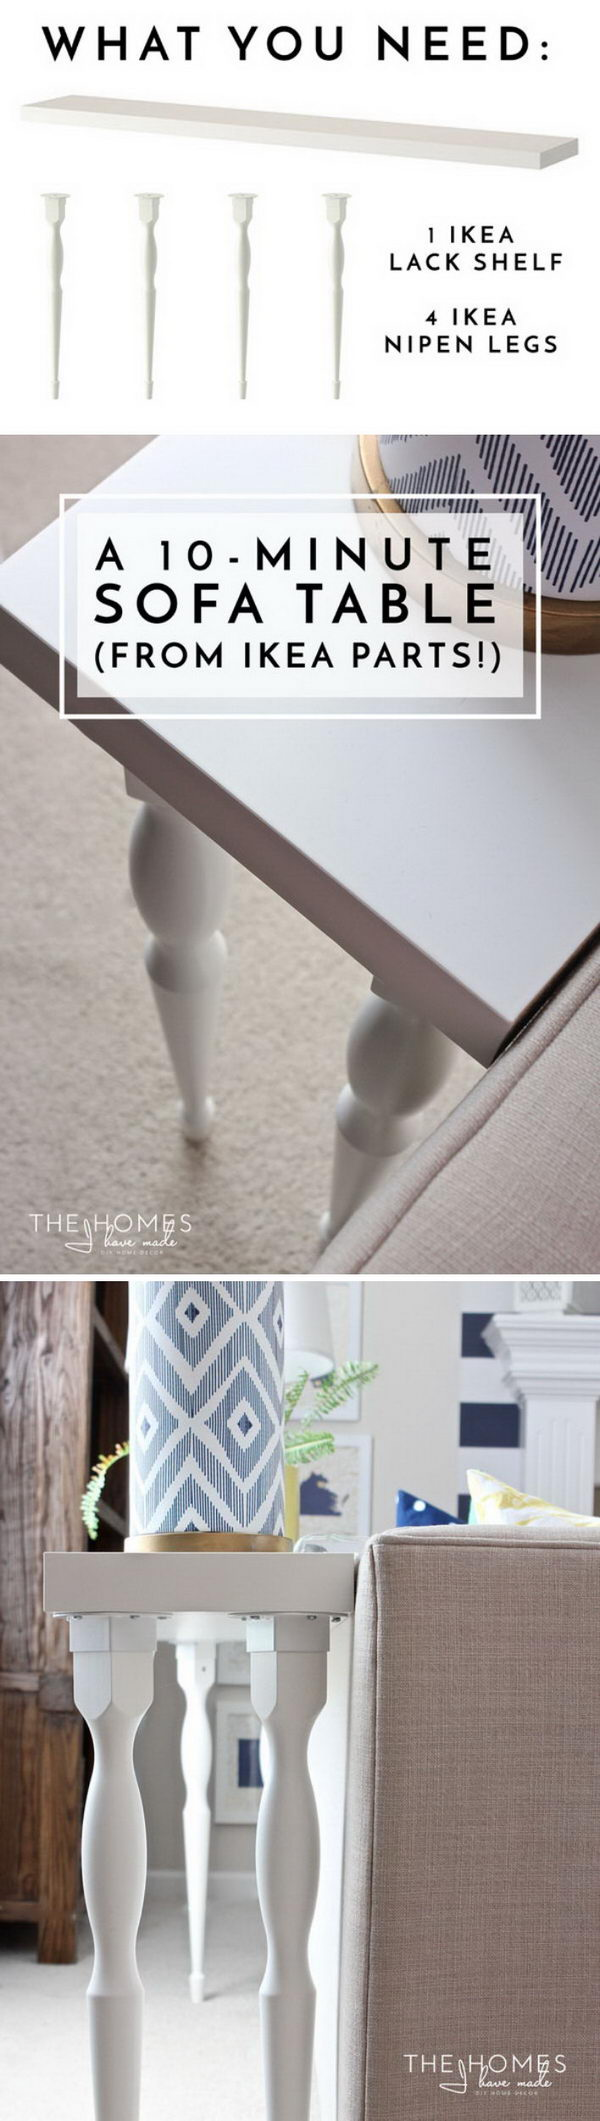 20 Easy Diy Console Table And Sofa Table Ideas 2017